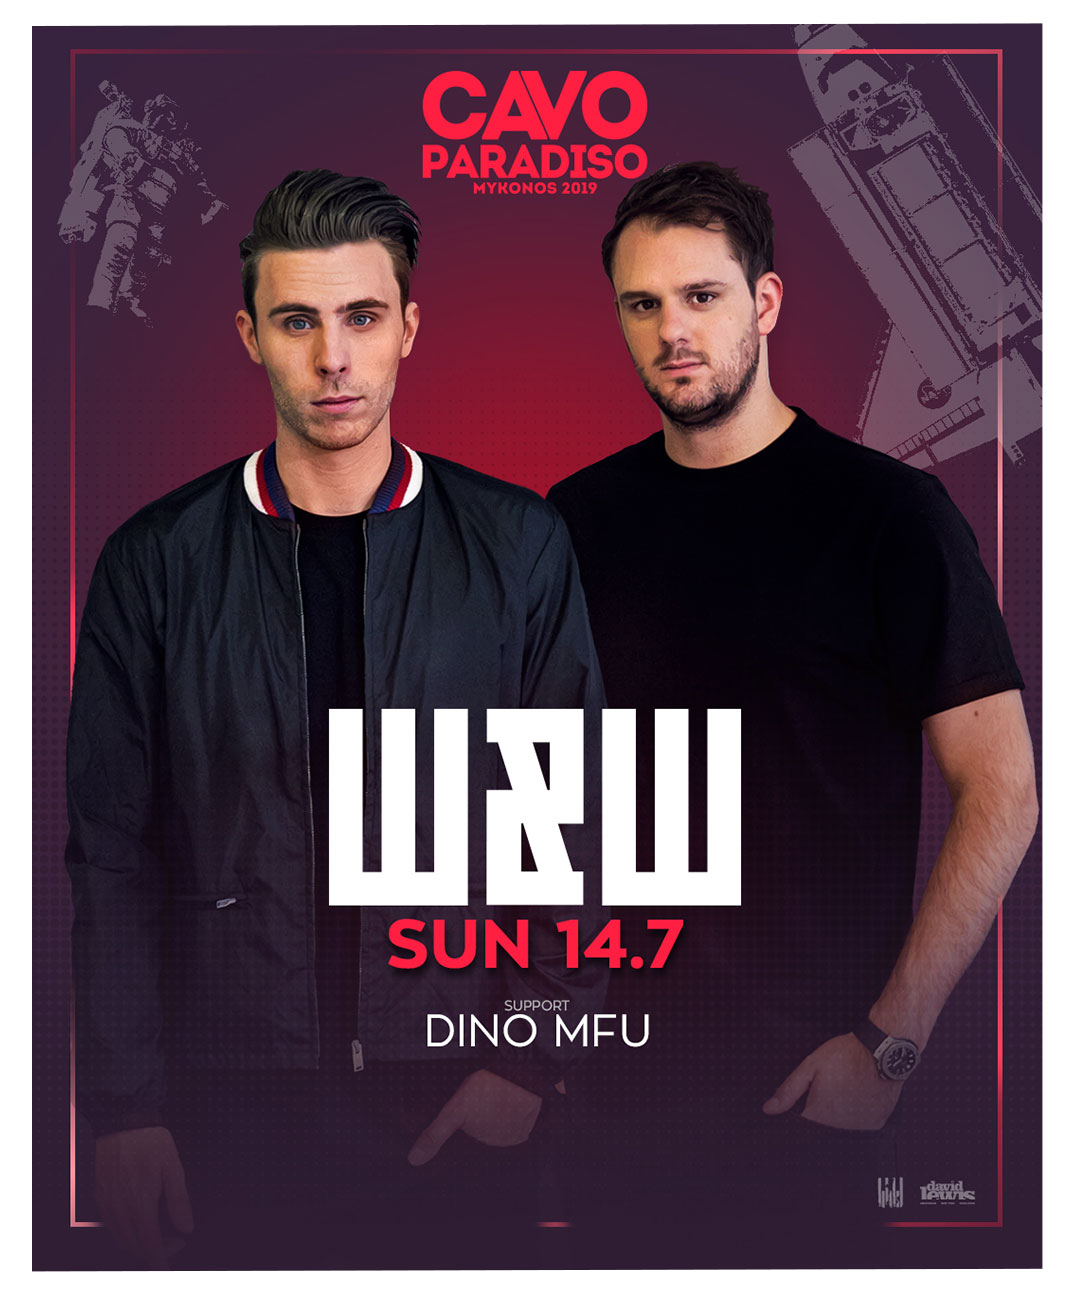 W&W w/ support by Dino MFU